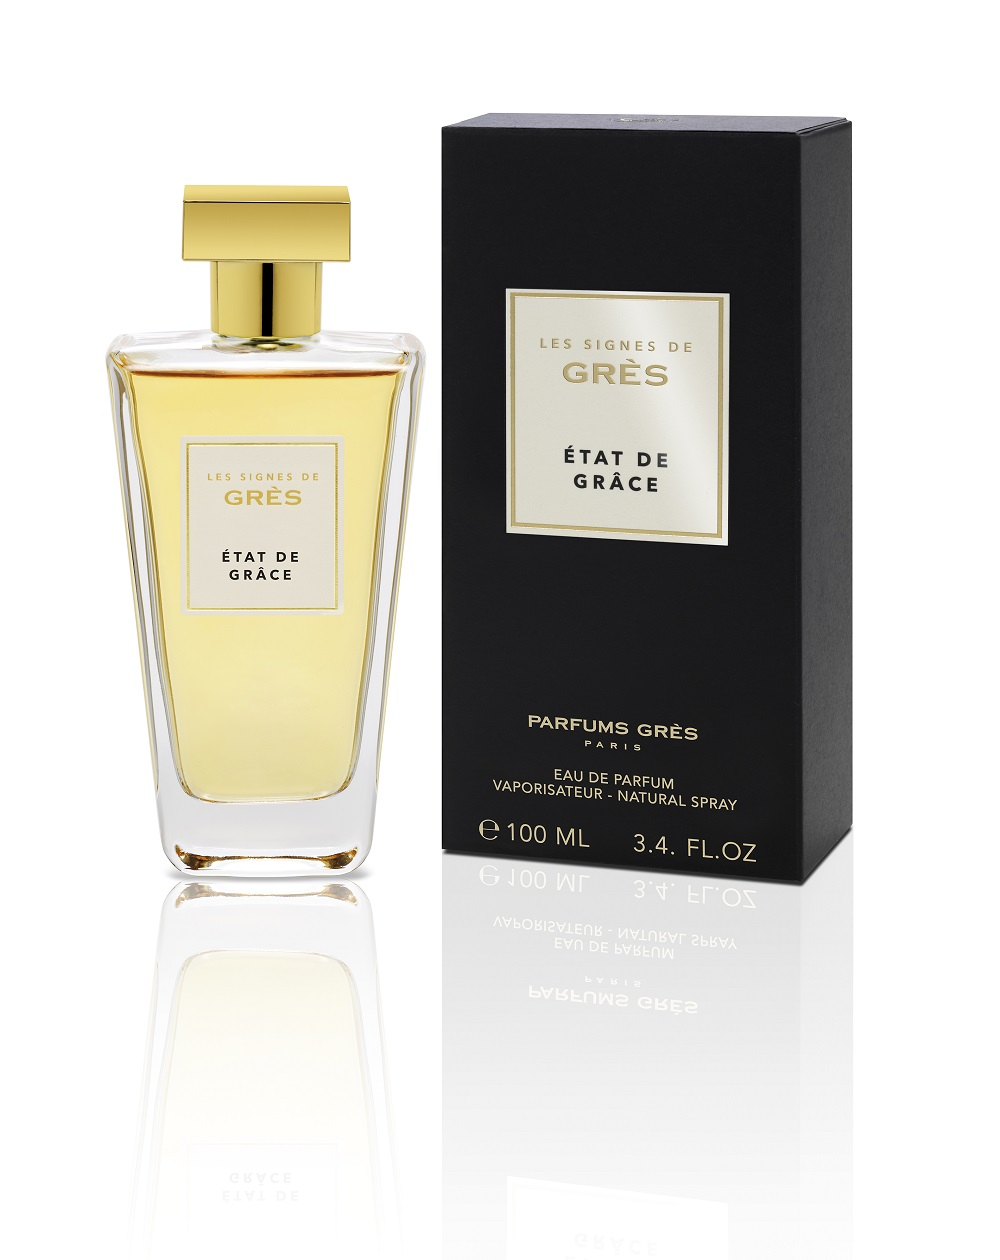 Tat De Grace Gres Perfume A New Fragrance For Women And Men 2017 Cabotine Rose Pictures